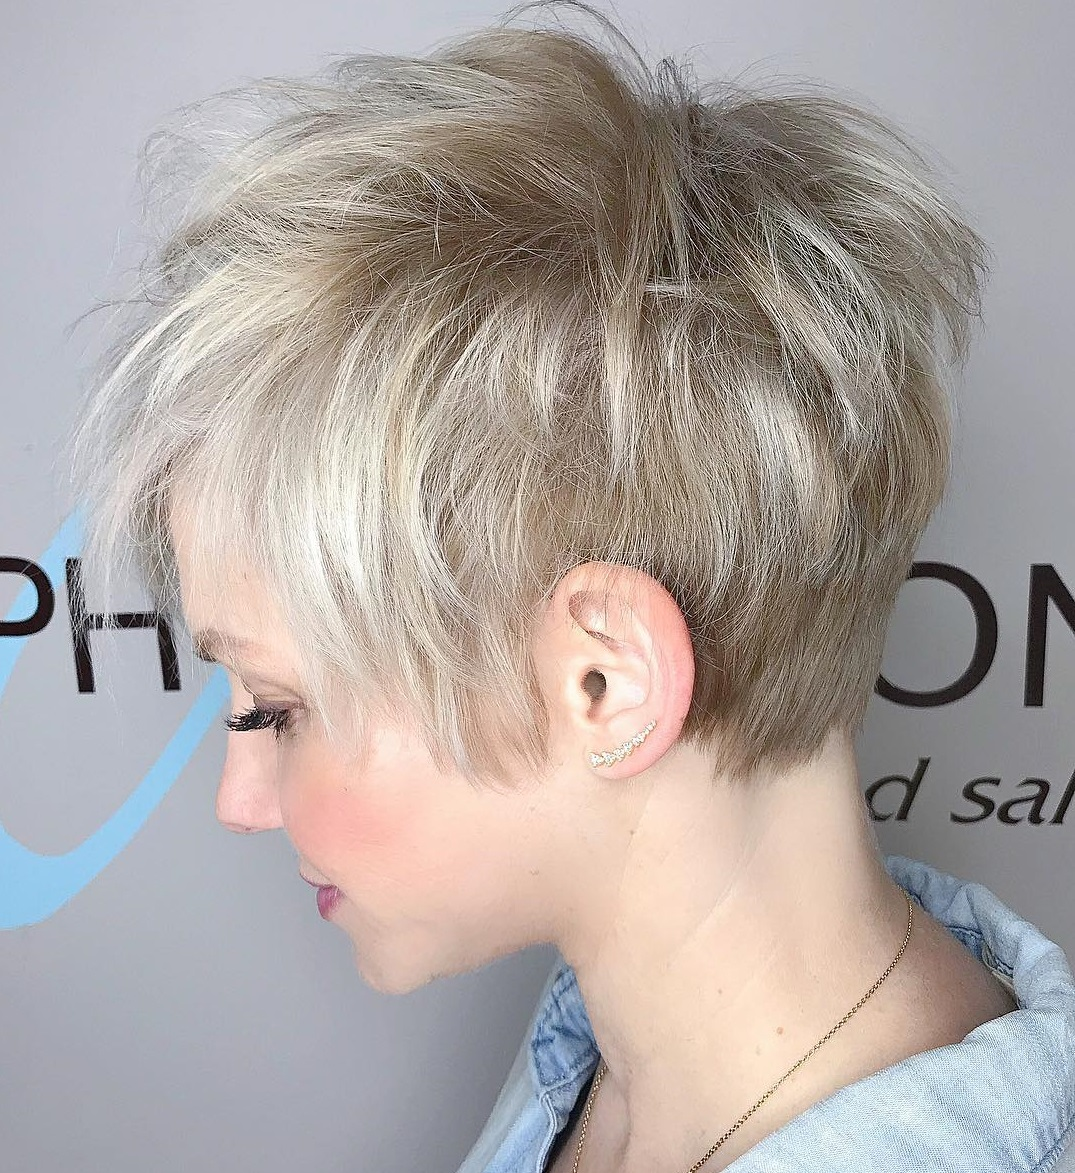 Short Frosted Hair Styles Cheaper Than Retail Price Buy Clothing Accessories And Lifestyle Products For Women Men